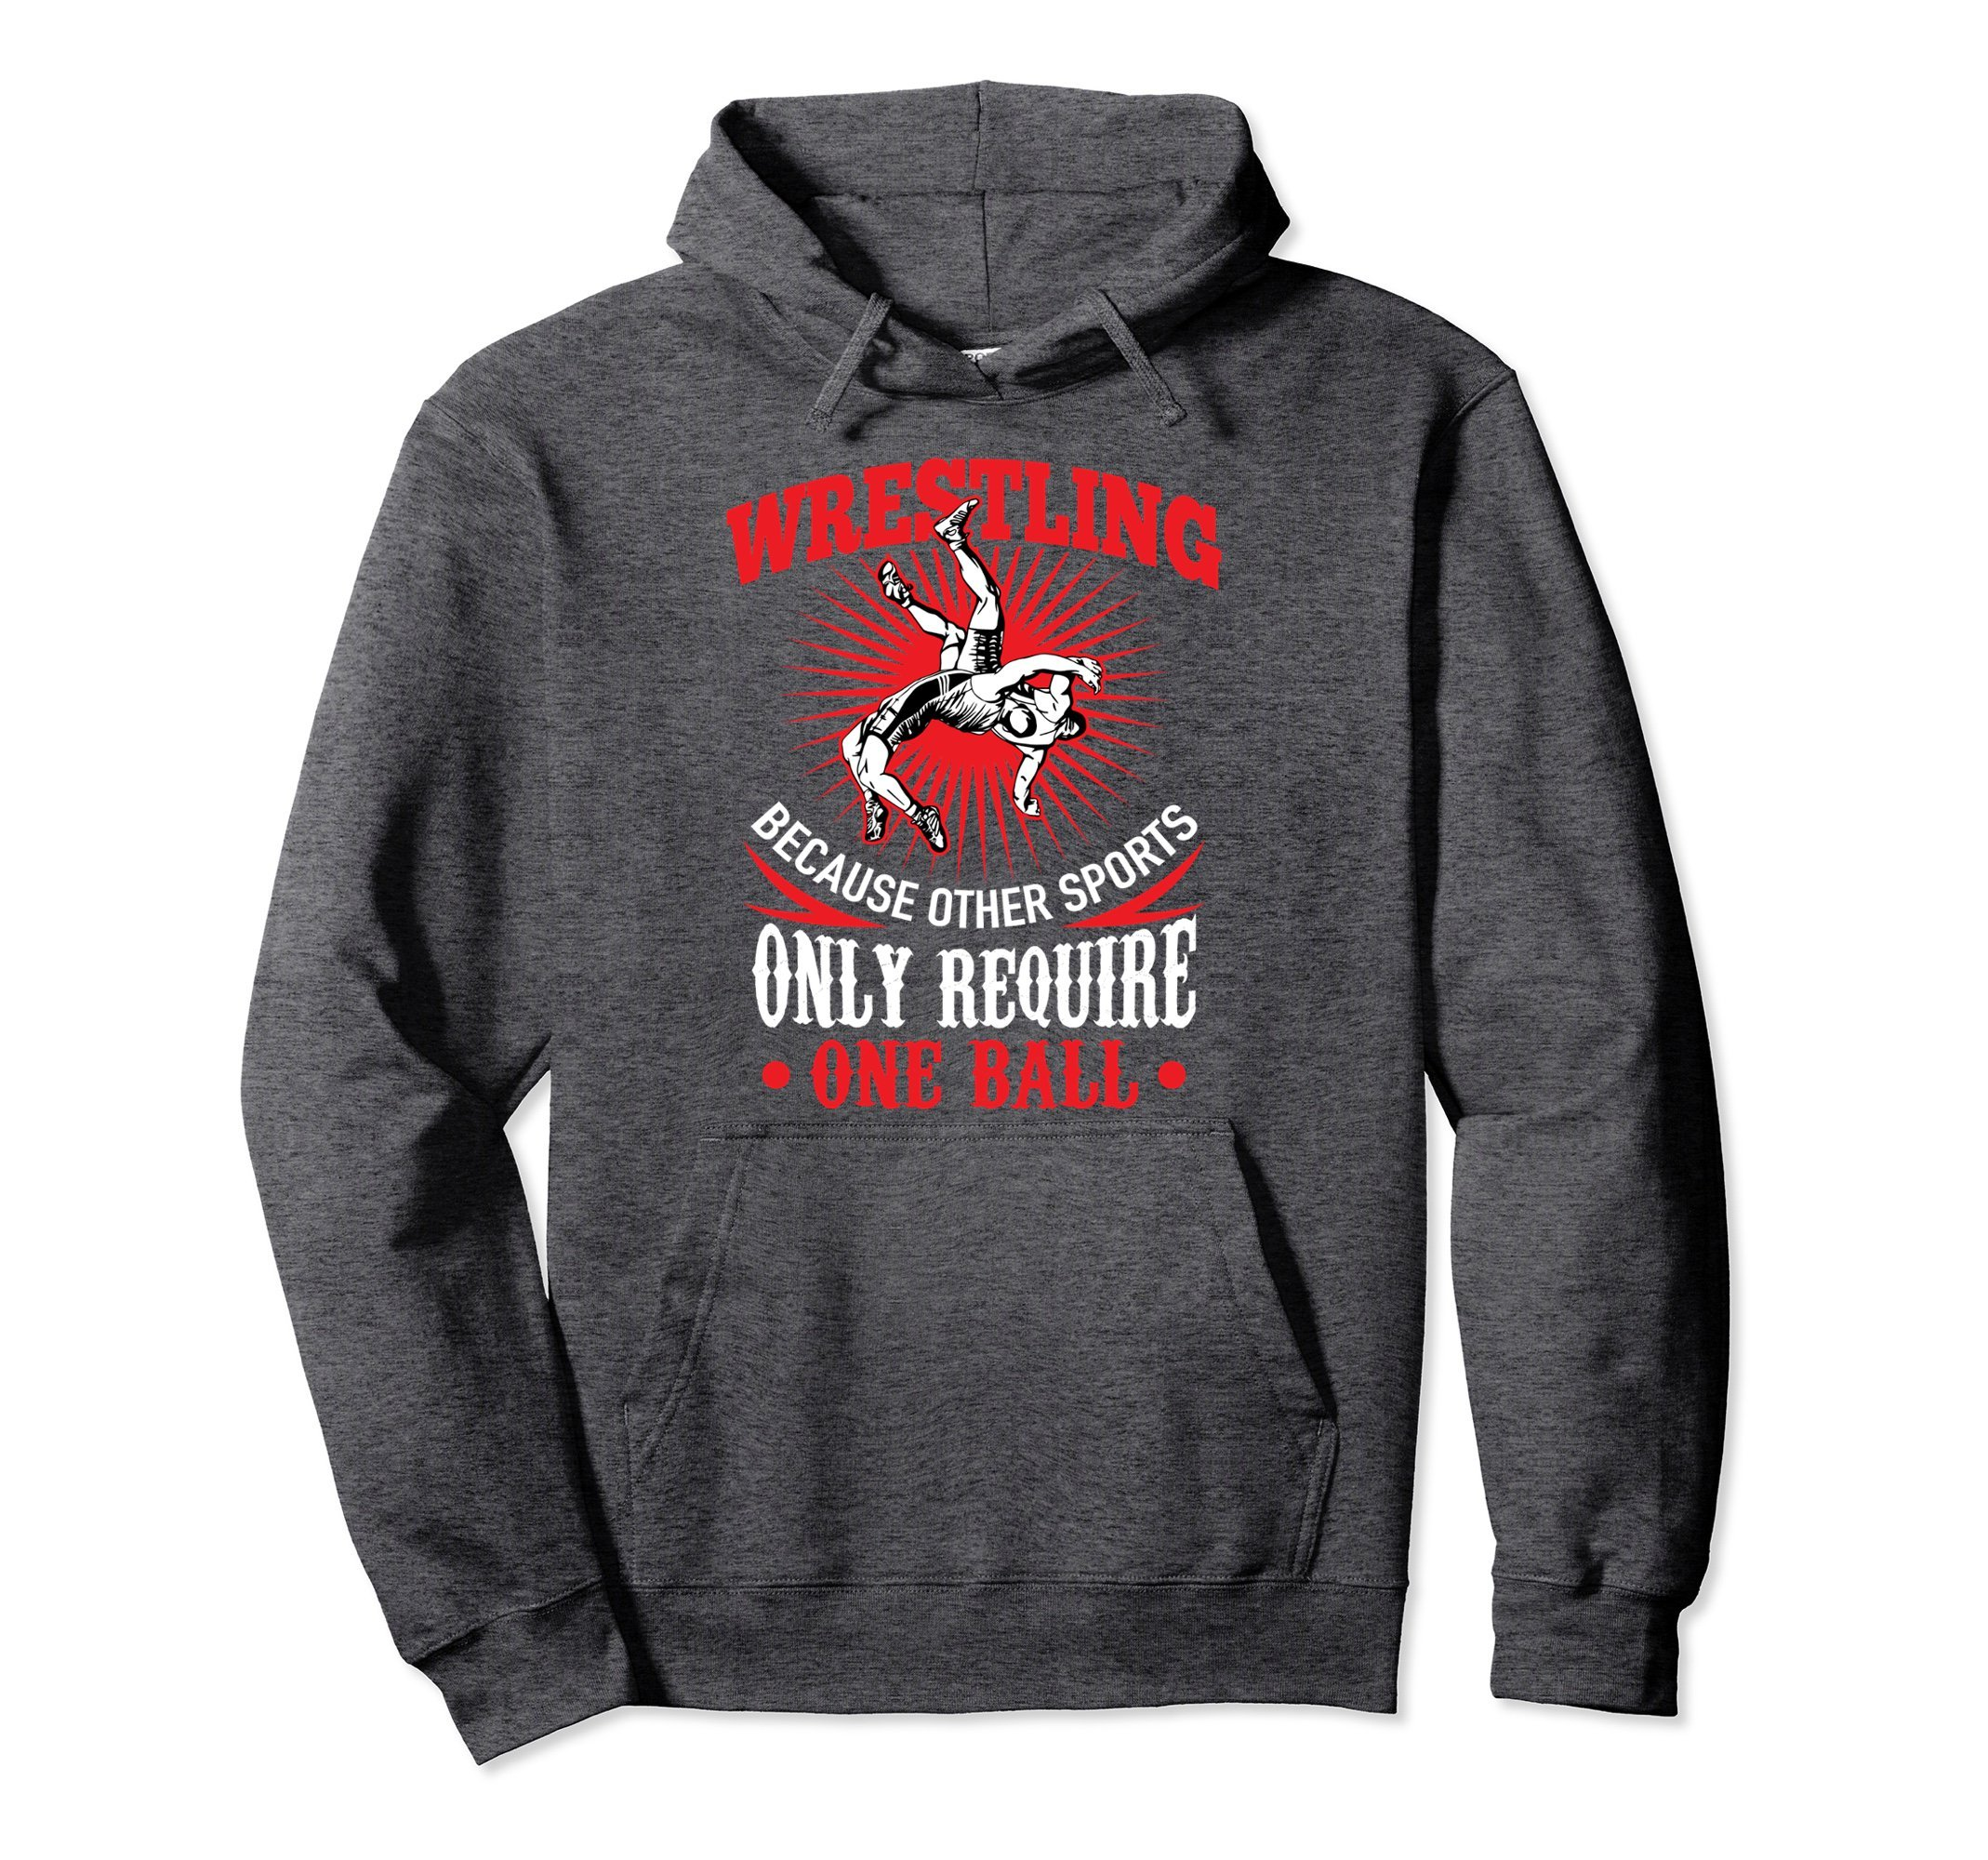 Unisex Wrestling Because Other Sports Only Require One Ball Hoodie 2XL Dark Heather